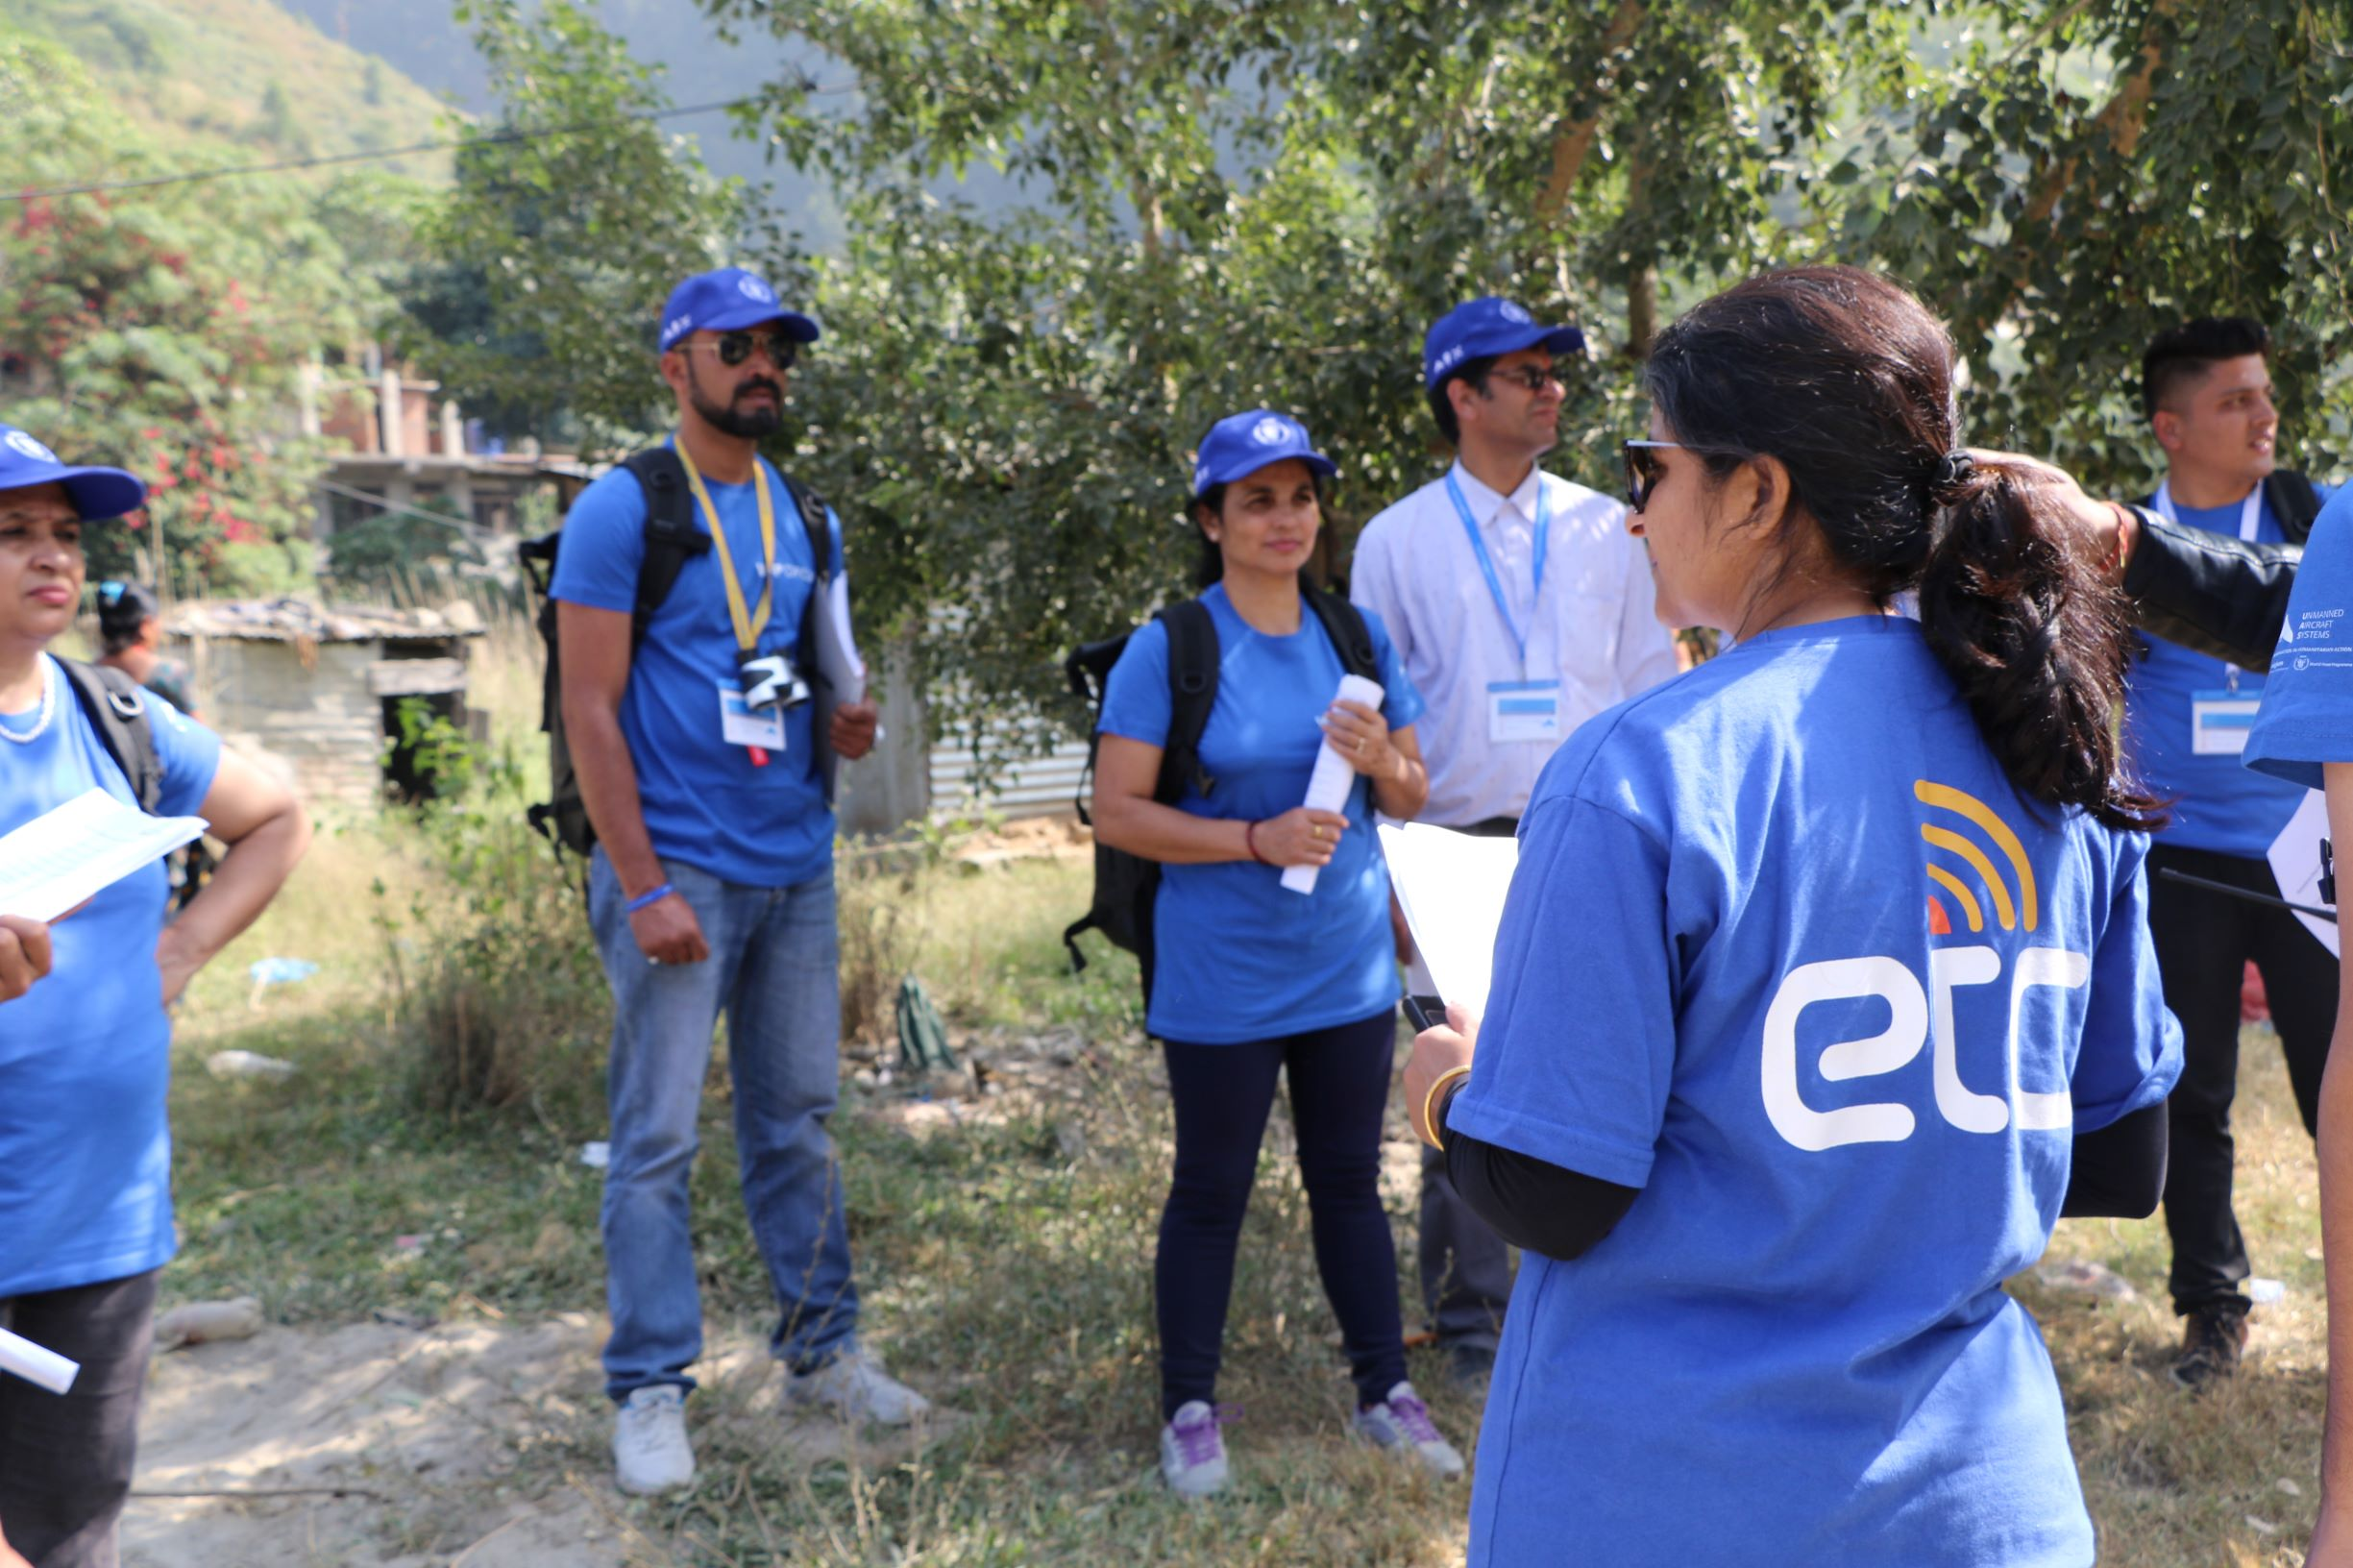 Bhawana in her ETC shirt during the WFP Drones capacity building. Photo: WeRobotics / Subash Gurung